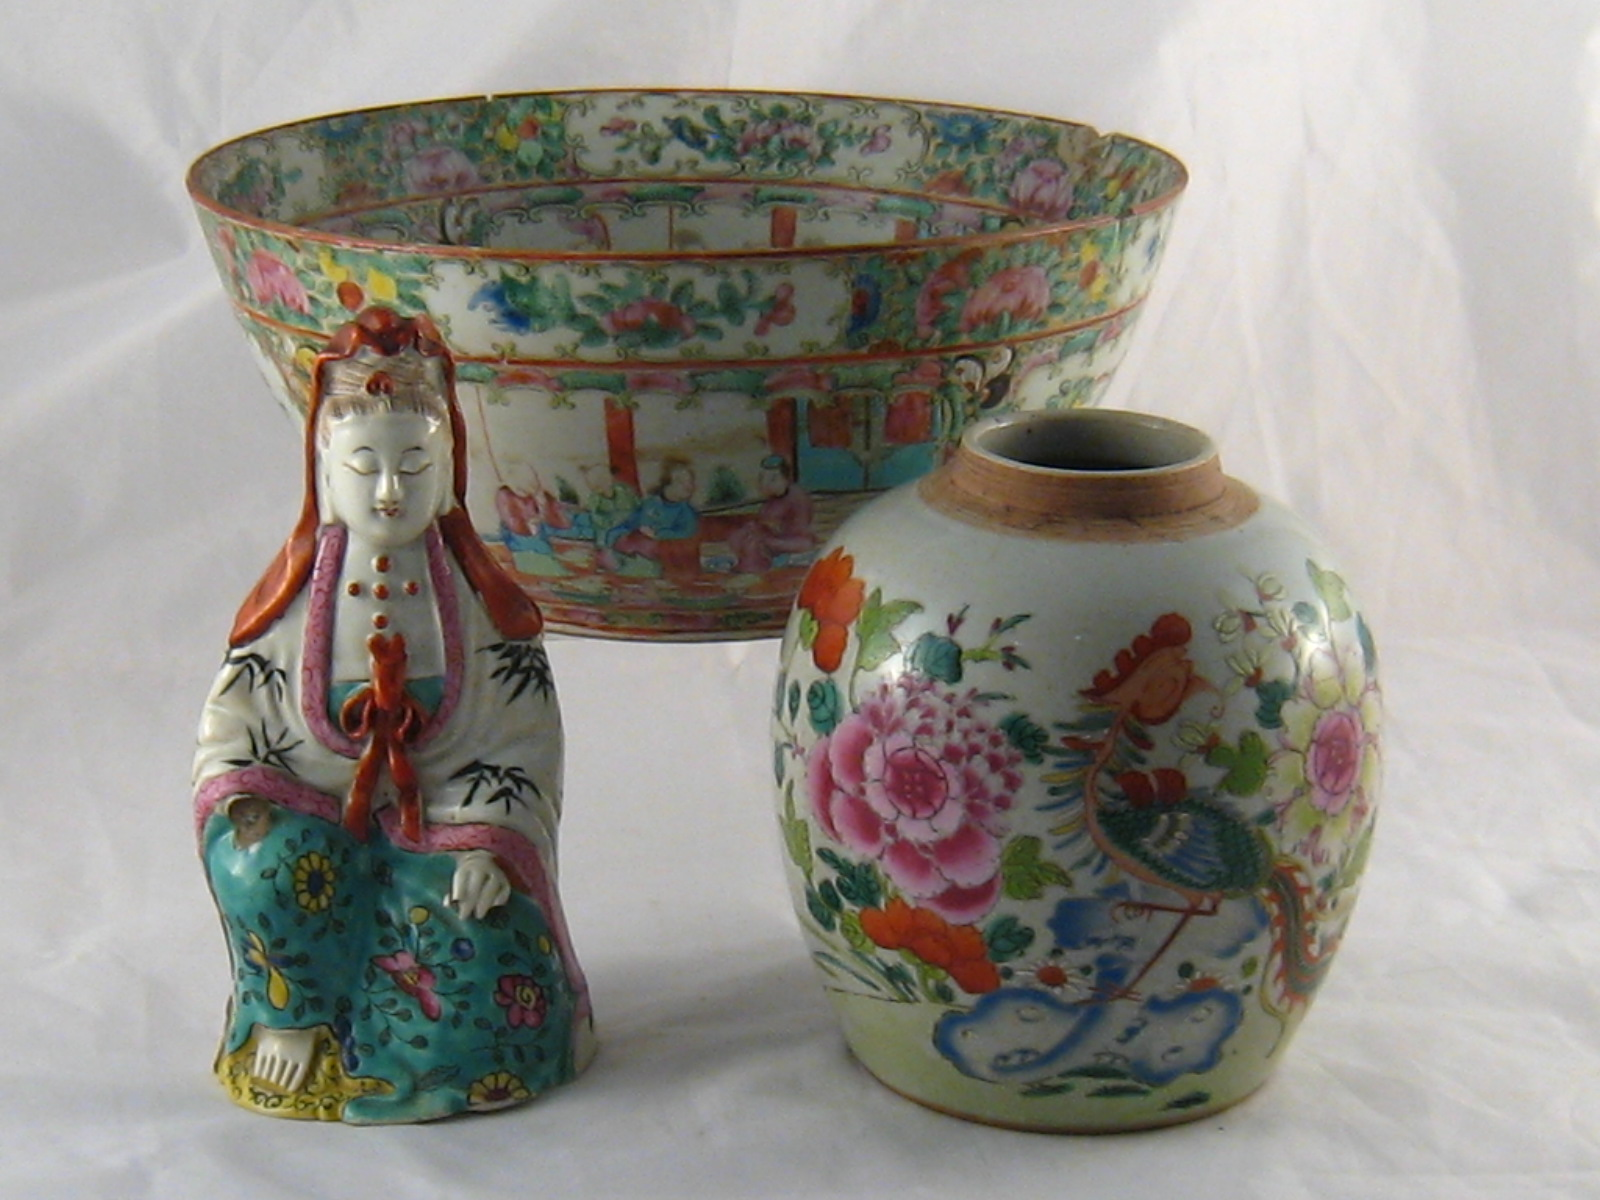 Lot 354 - A Chinese ginger jar overglaze painted, ht 16cm.